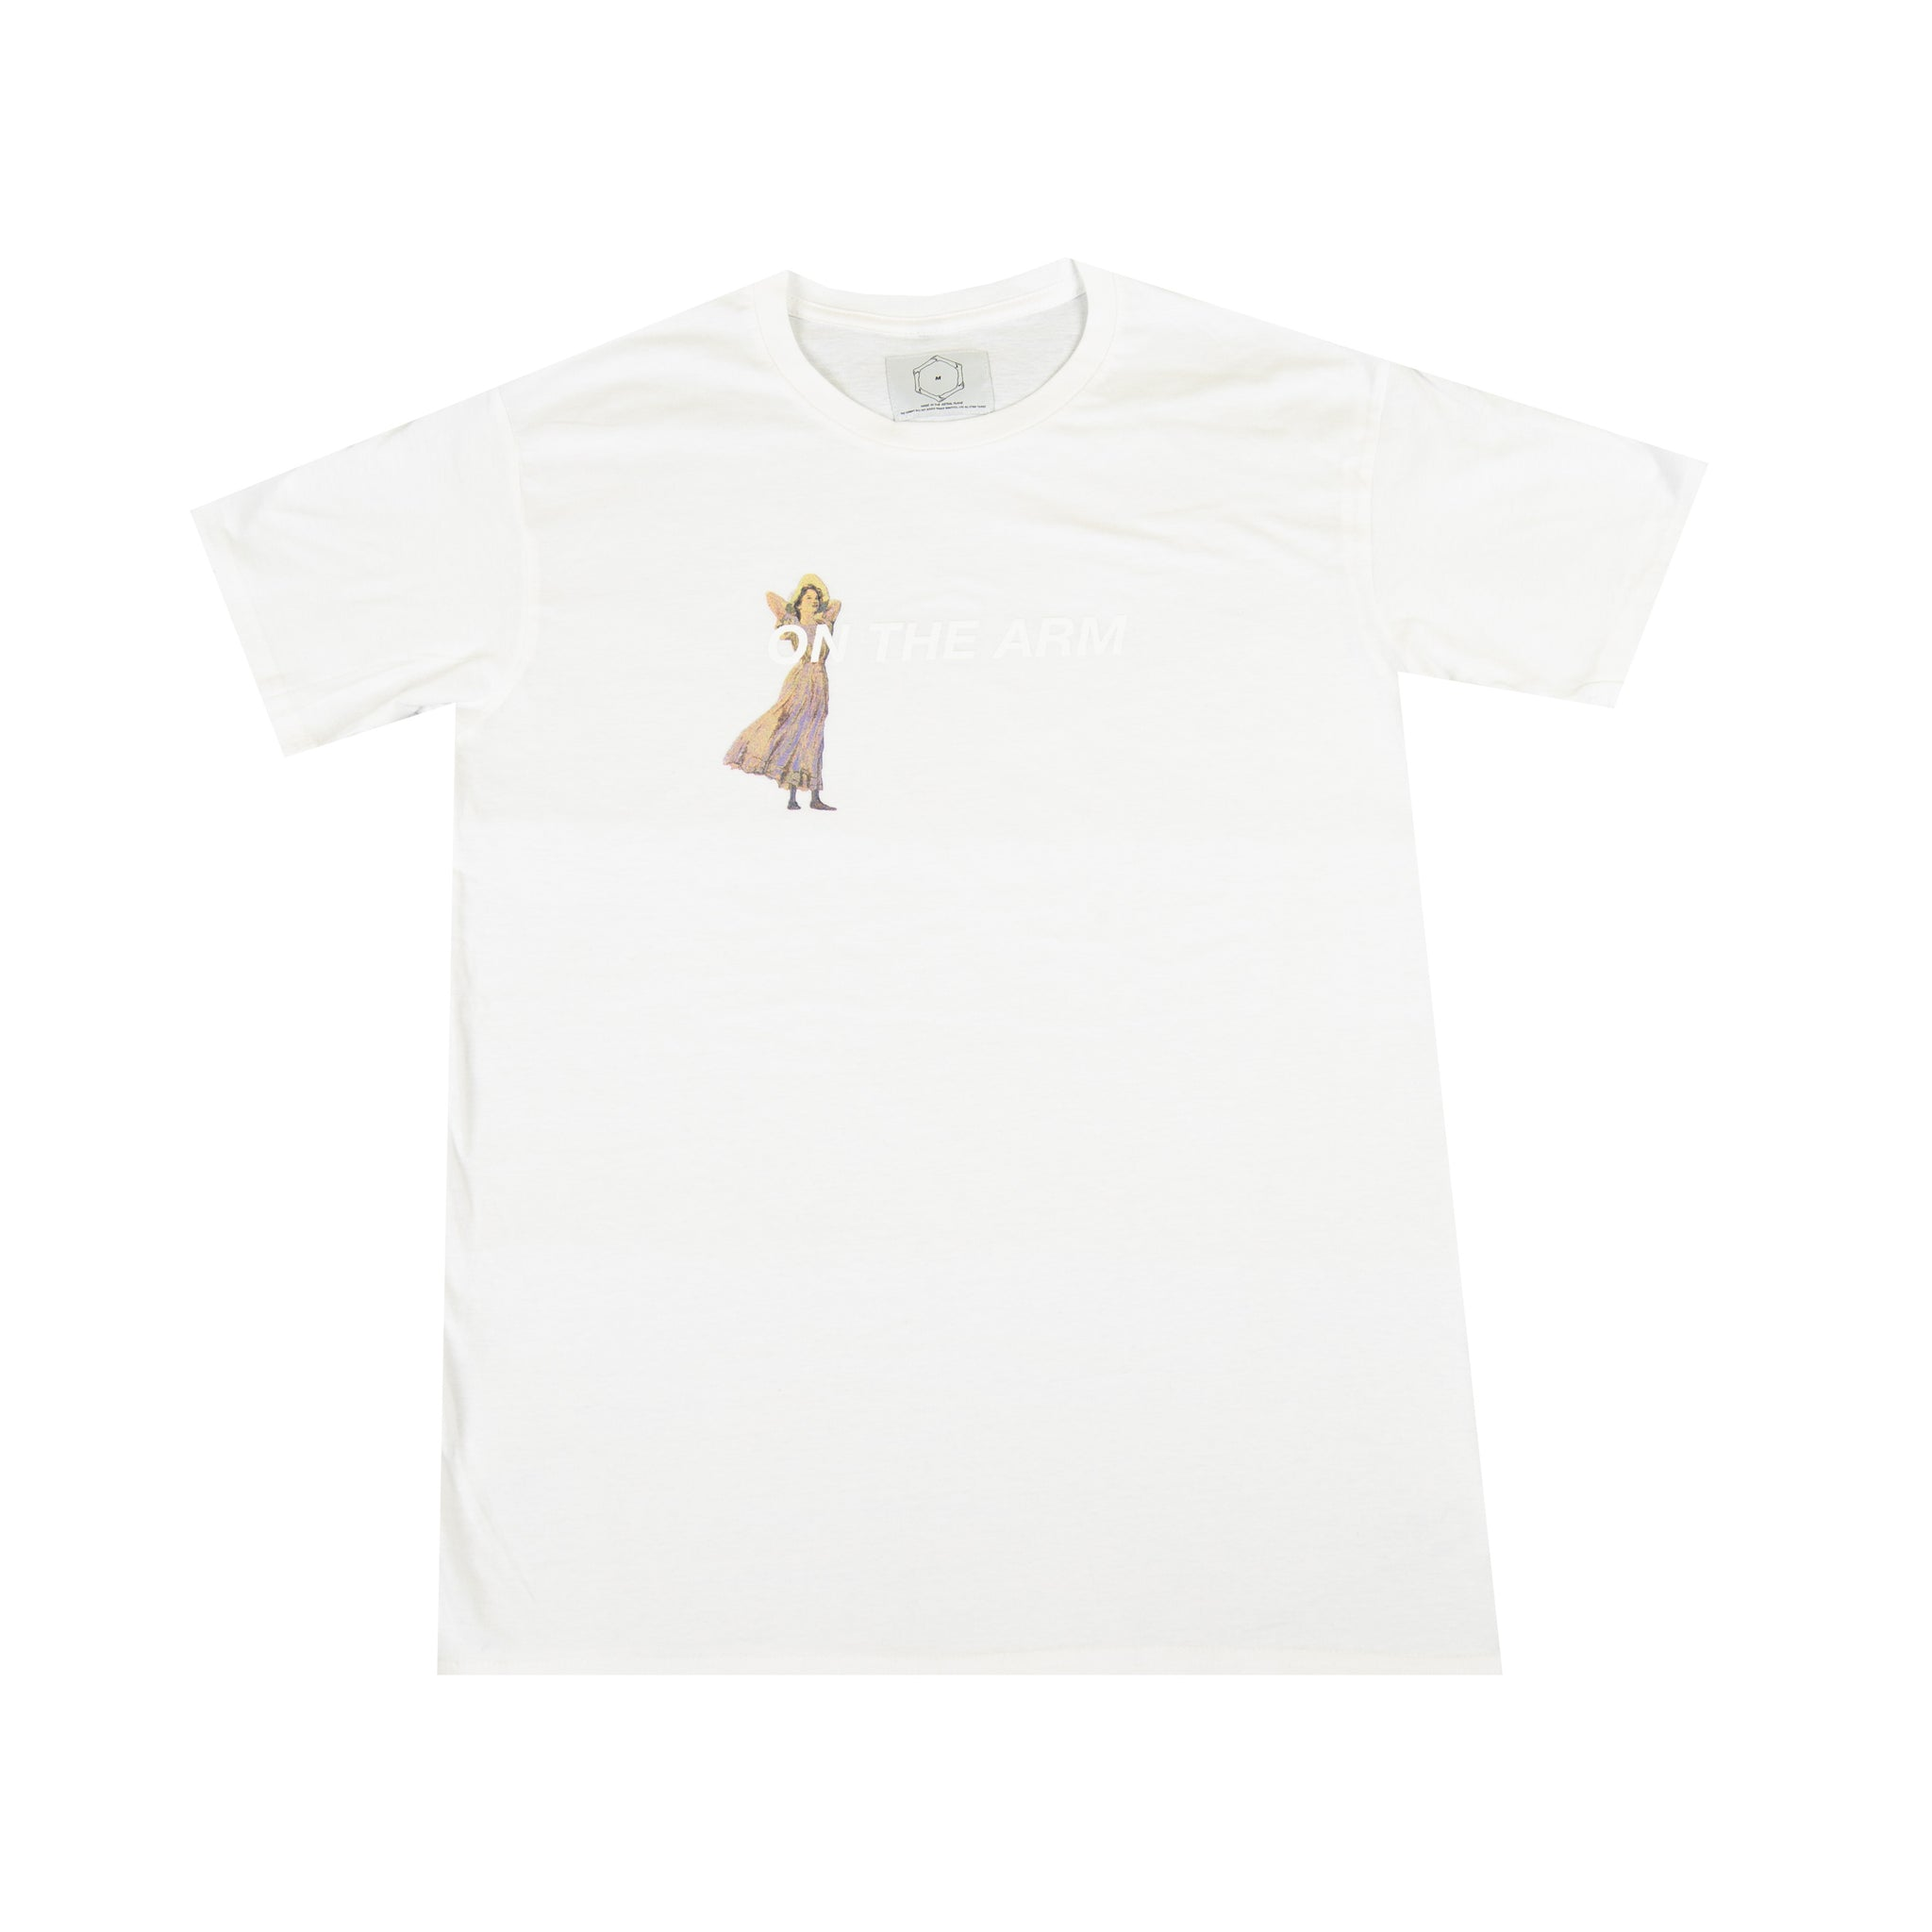 OTA White Beautiful Day Tee